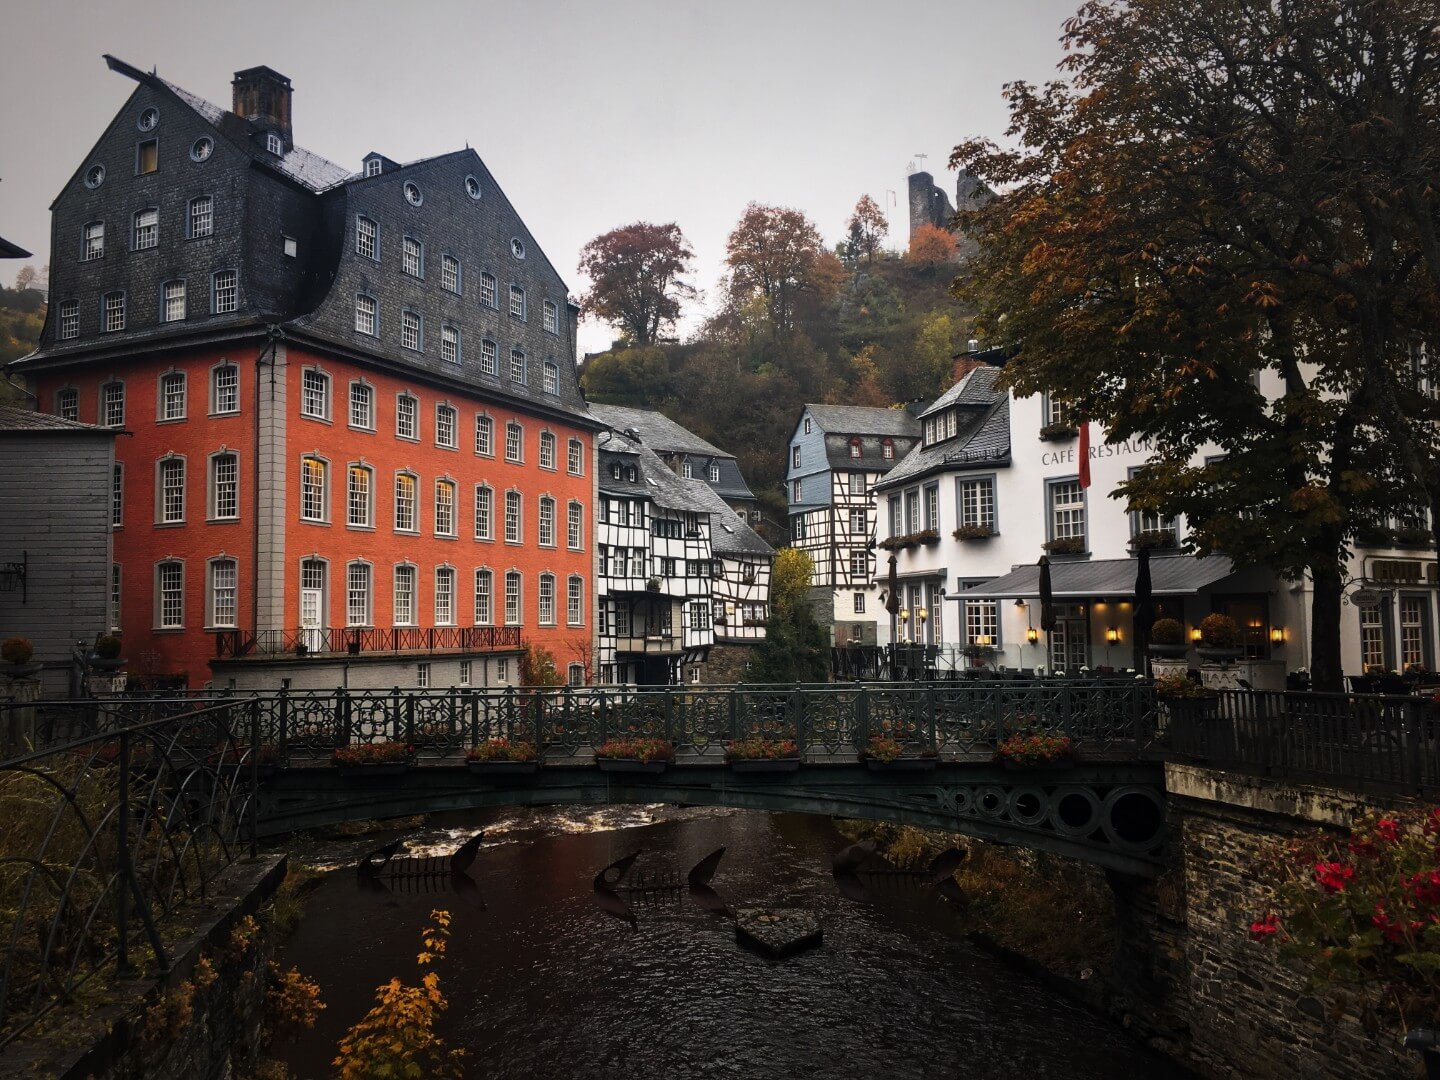 Eifel Travel Guide, Germany - best things to do and see in Germany's secret region